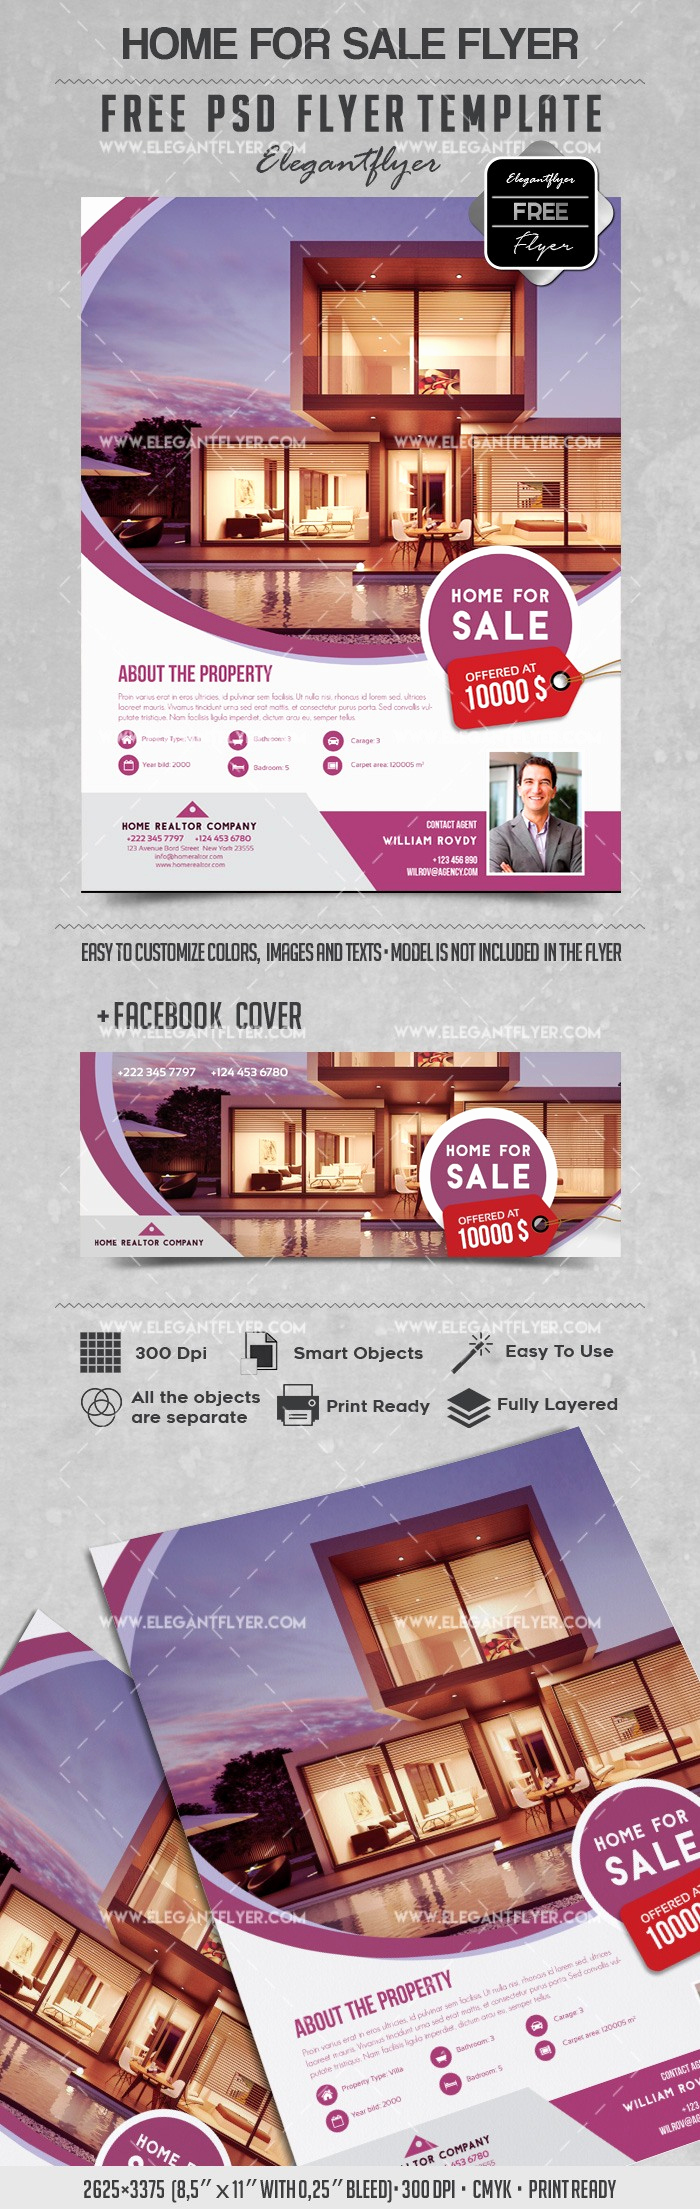 Home for Sale Flyer Lovely Home for Sale – Flyer Psd Template – by Elegantflyer